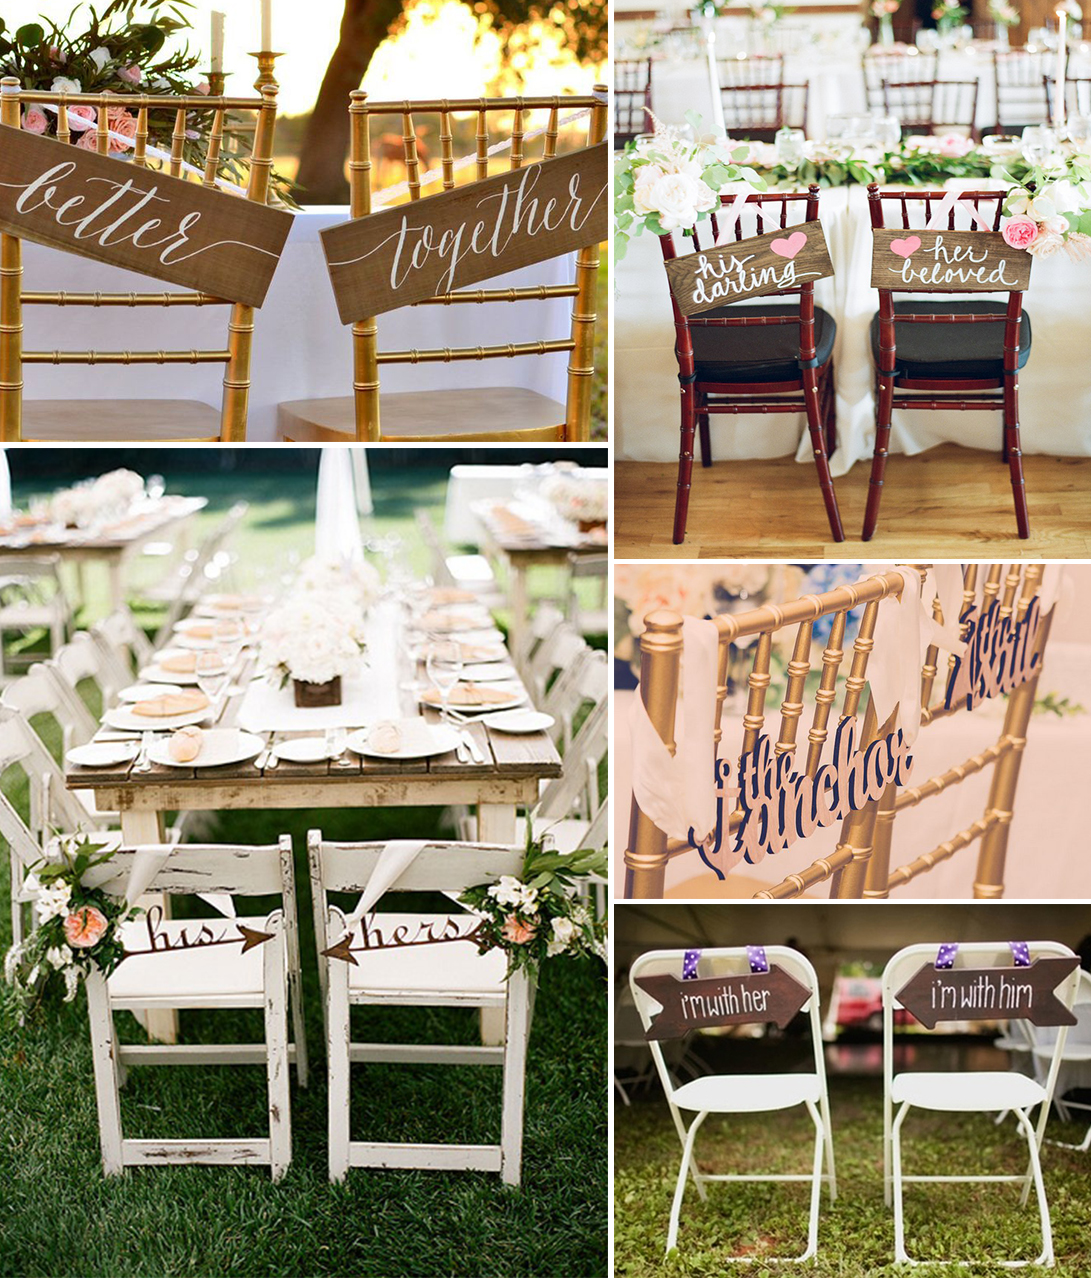 chairs wedding poland high seat for elderly chair signage at your sweetheart table in